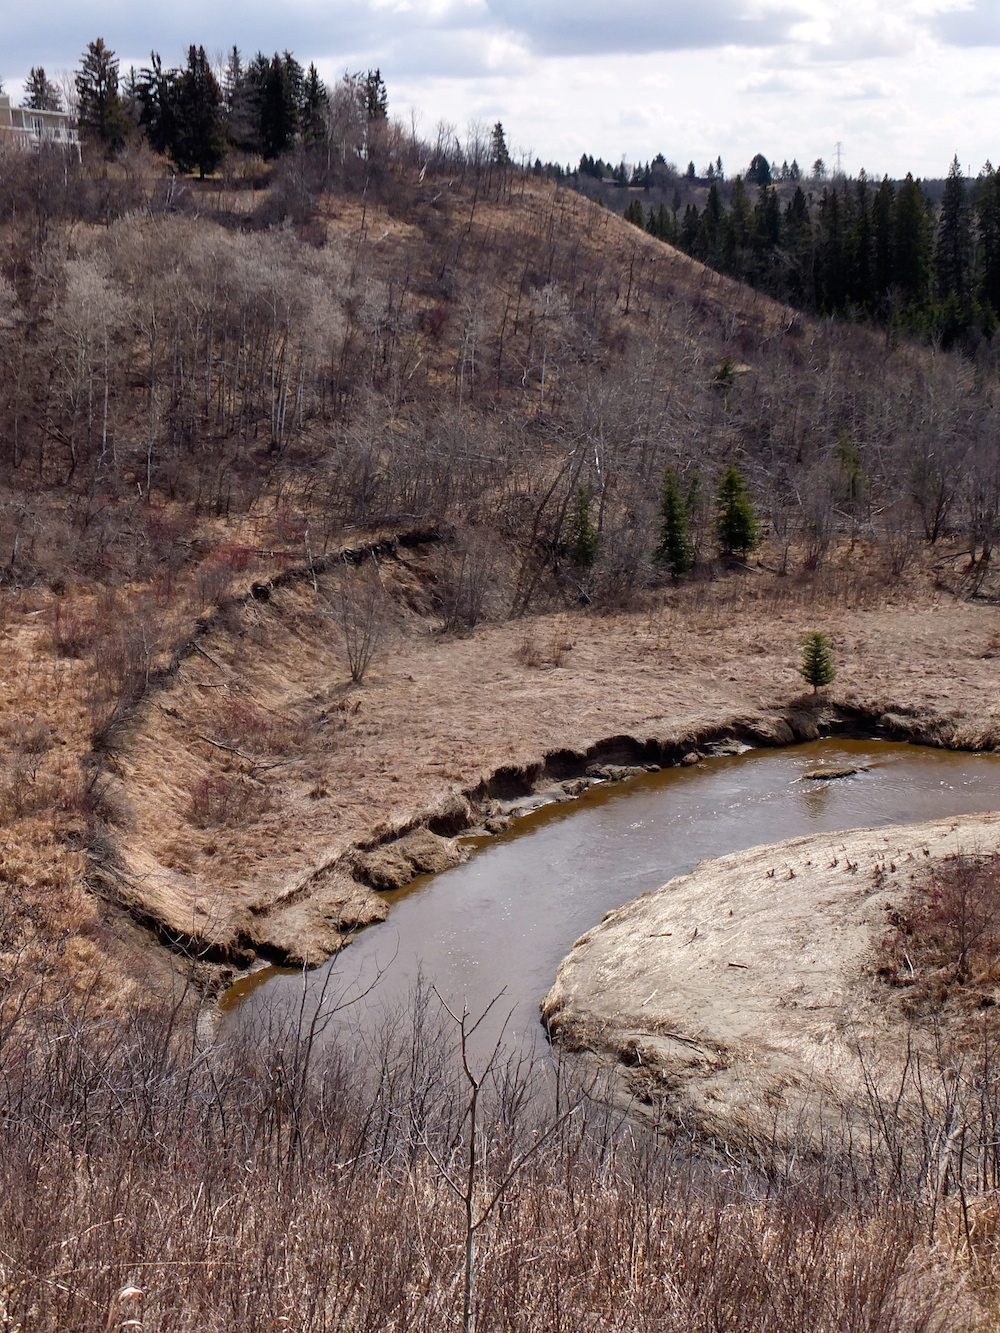 Whitemud Creek, slumbering still